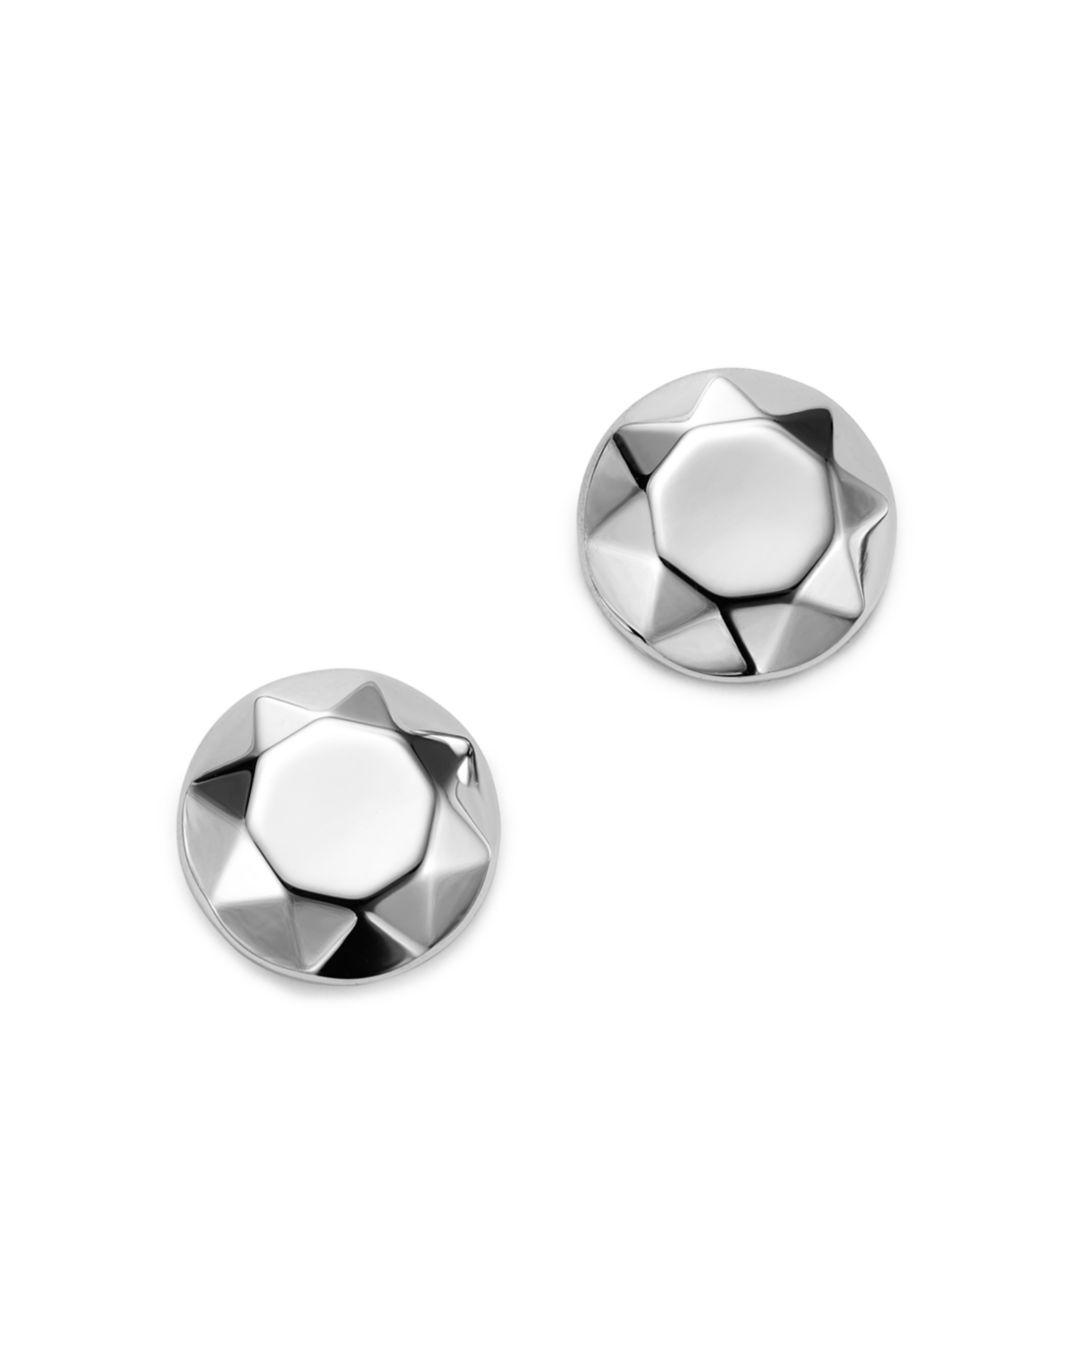 ec0a2d2f7 Lyst - Bloomingdale's Faceted Dome Earrings In 14k White Gold in White